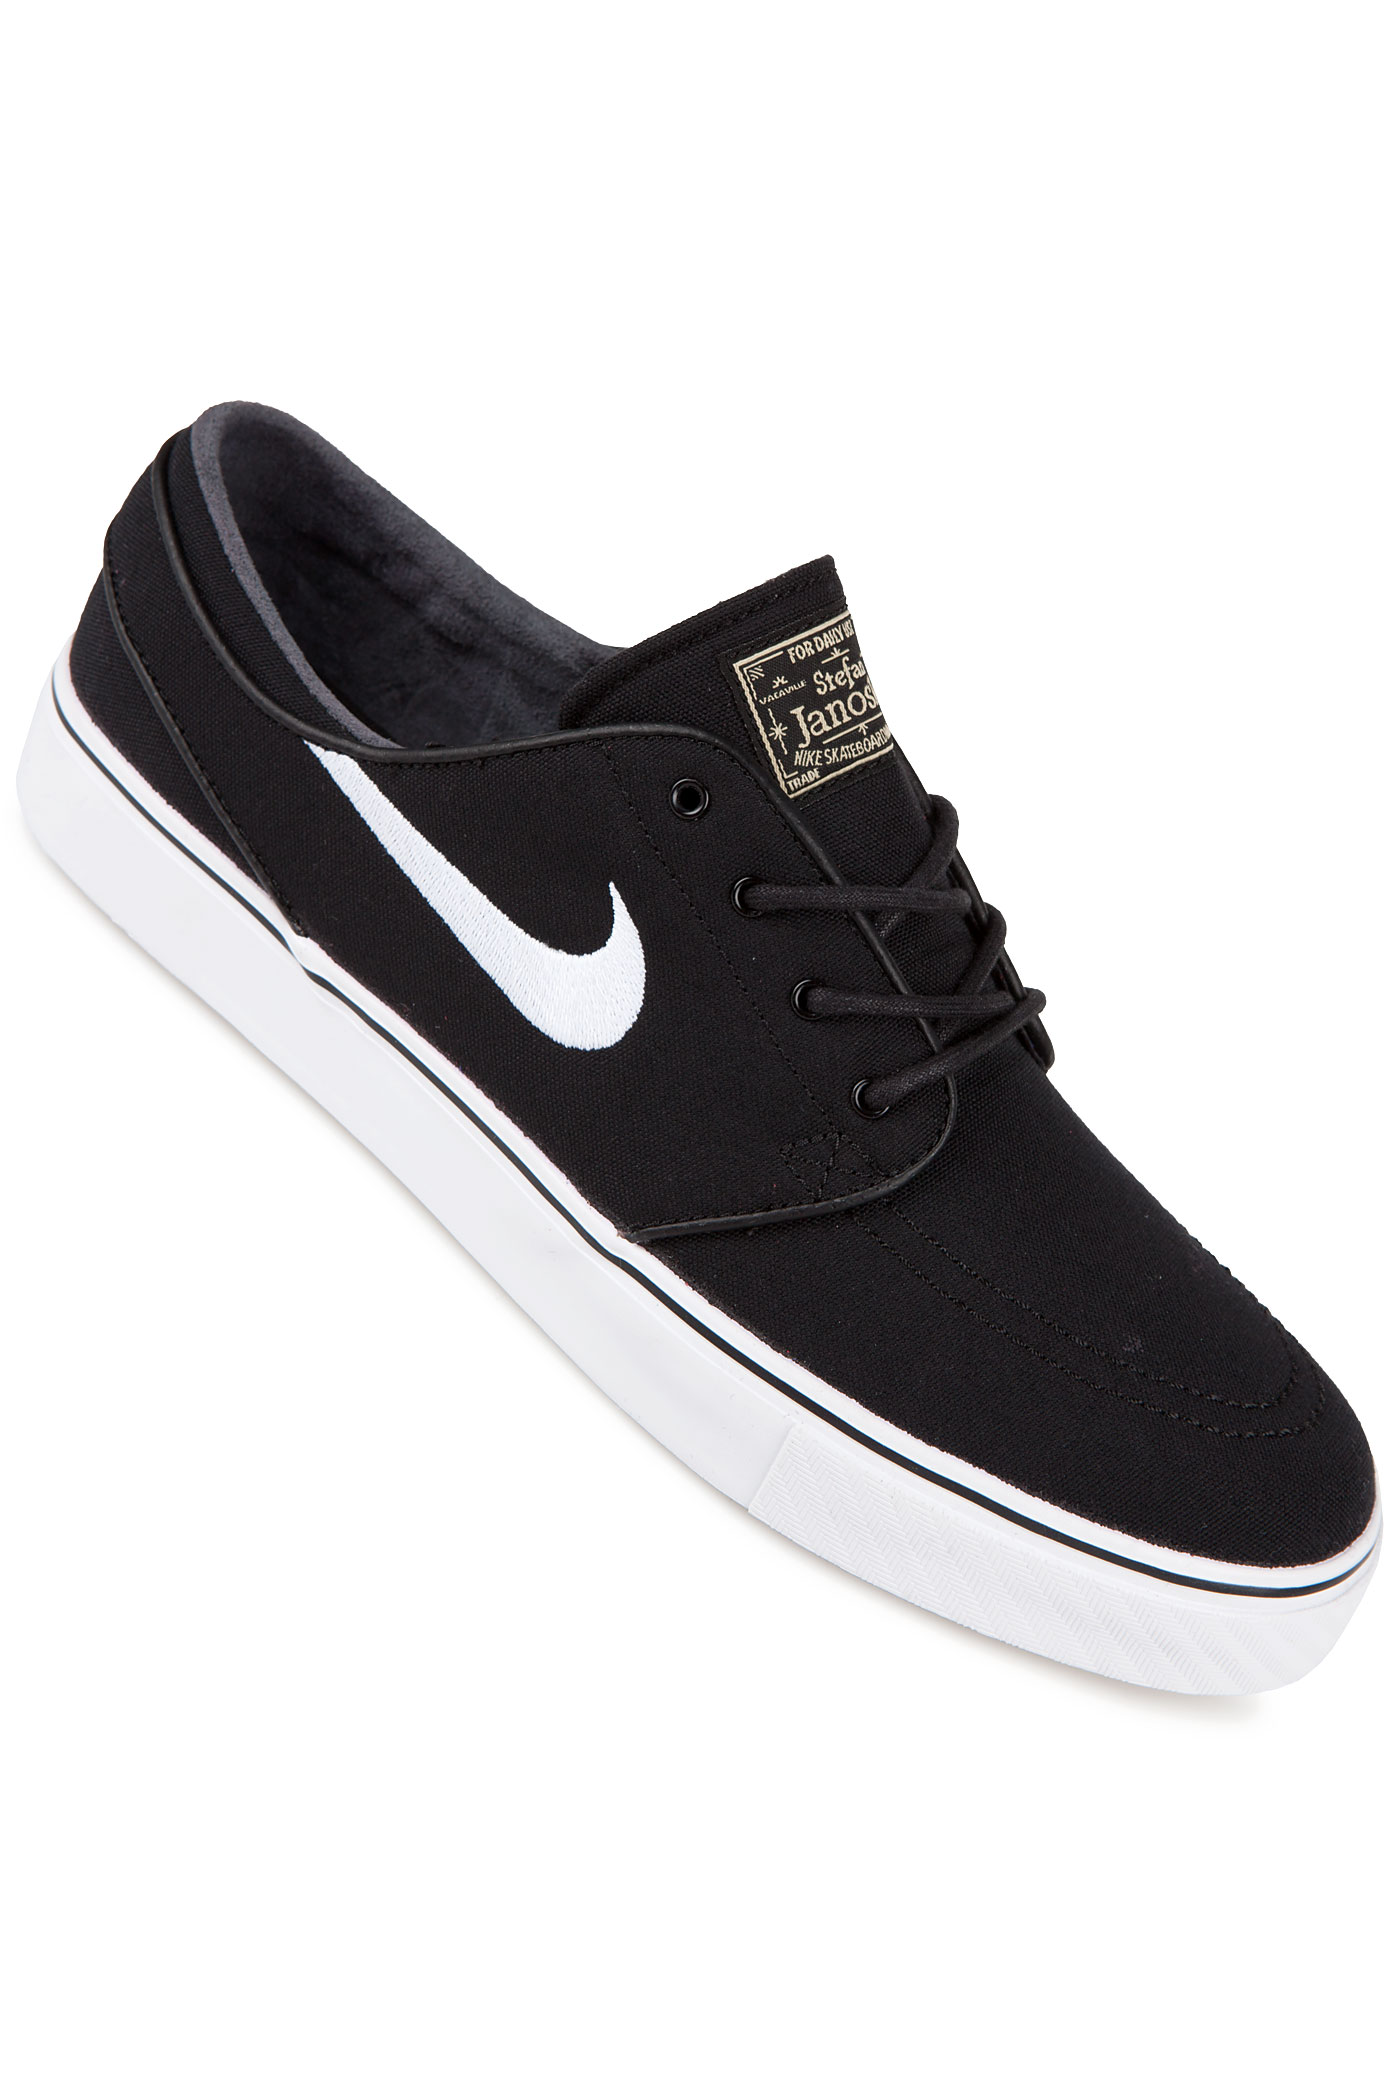 nike sb zoom stefan janoski canvas shoes black white gum